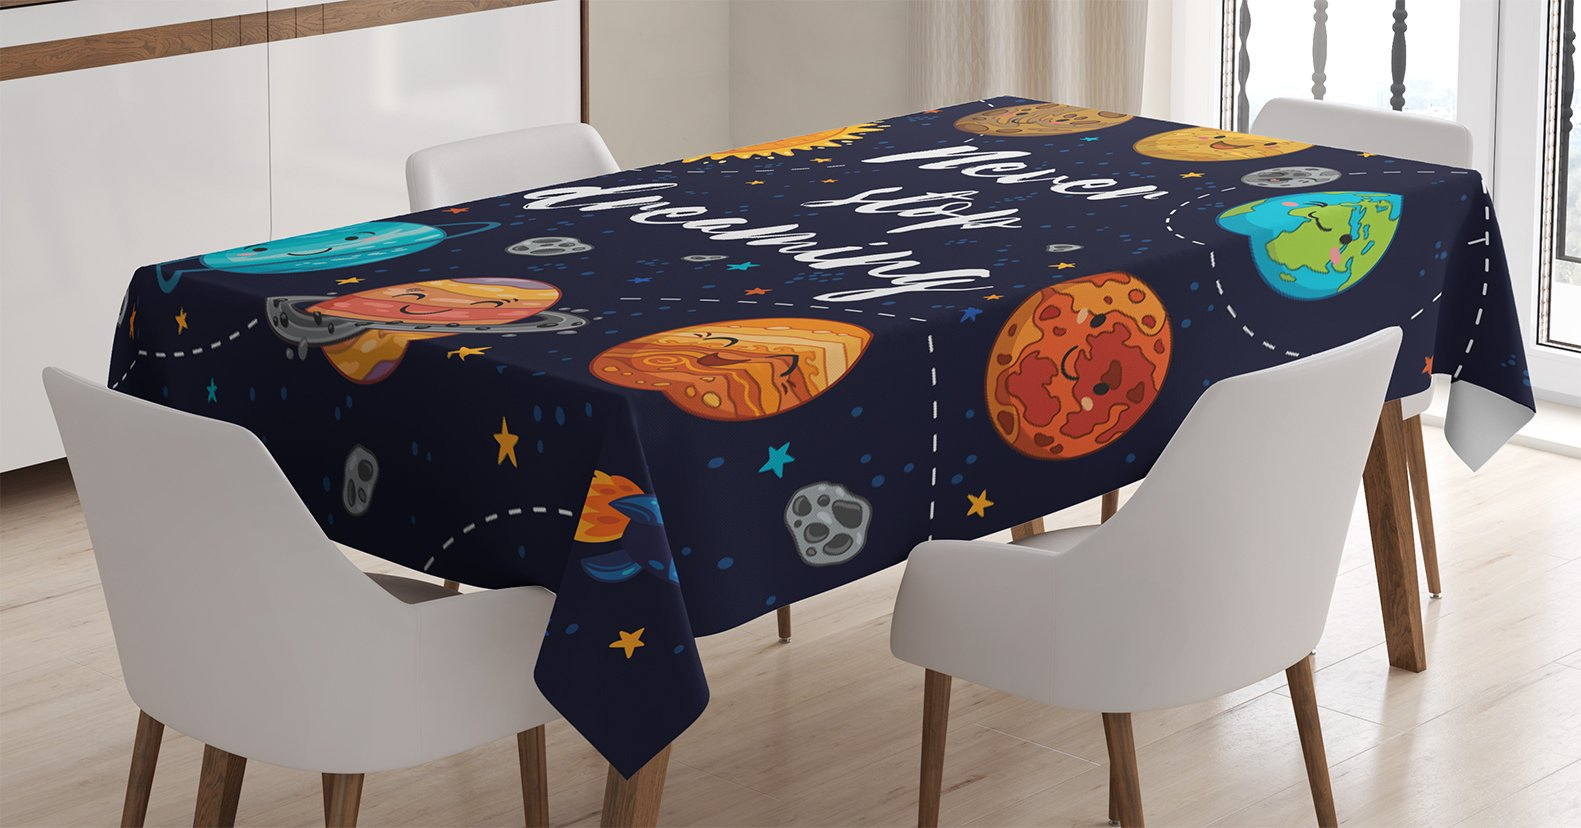 Ambesonne Quotes Decor Tablecloth, Cute Outer Space Planets and Star Cluster Solar System Moon and Comets Sun Cosmos Illustration, Rectangular Table Cover for Dining Room Kitchen, 52x70 inch, Multi